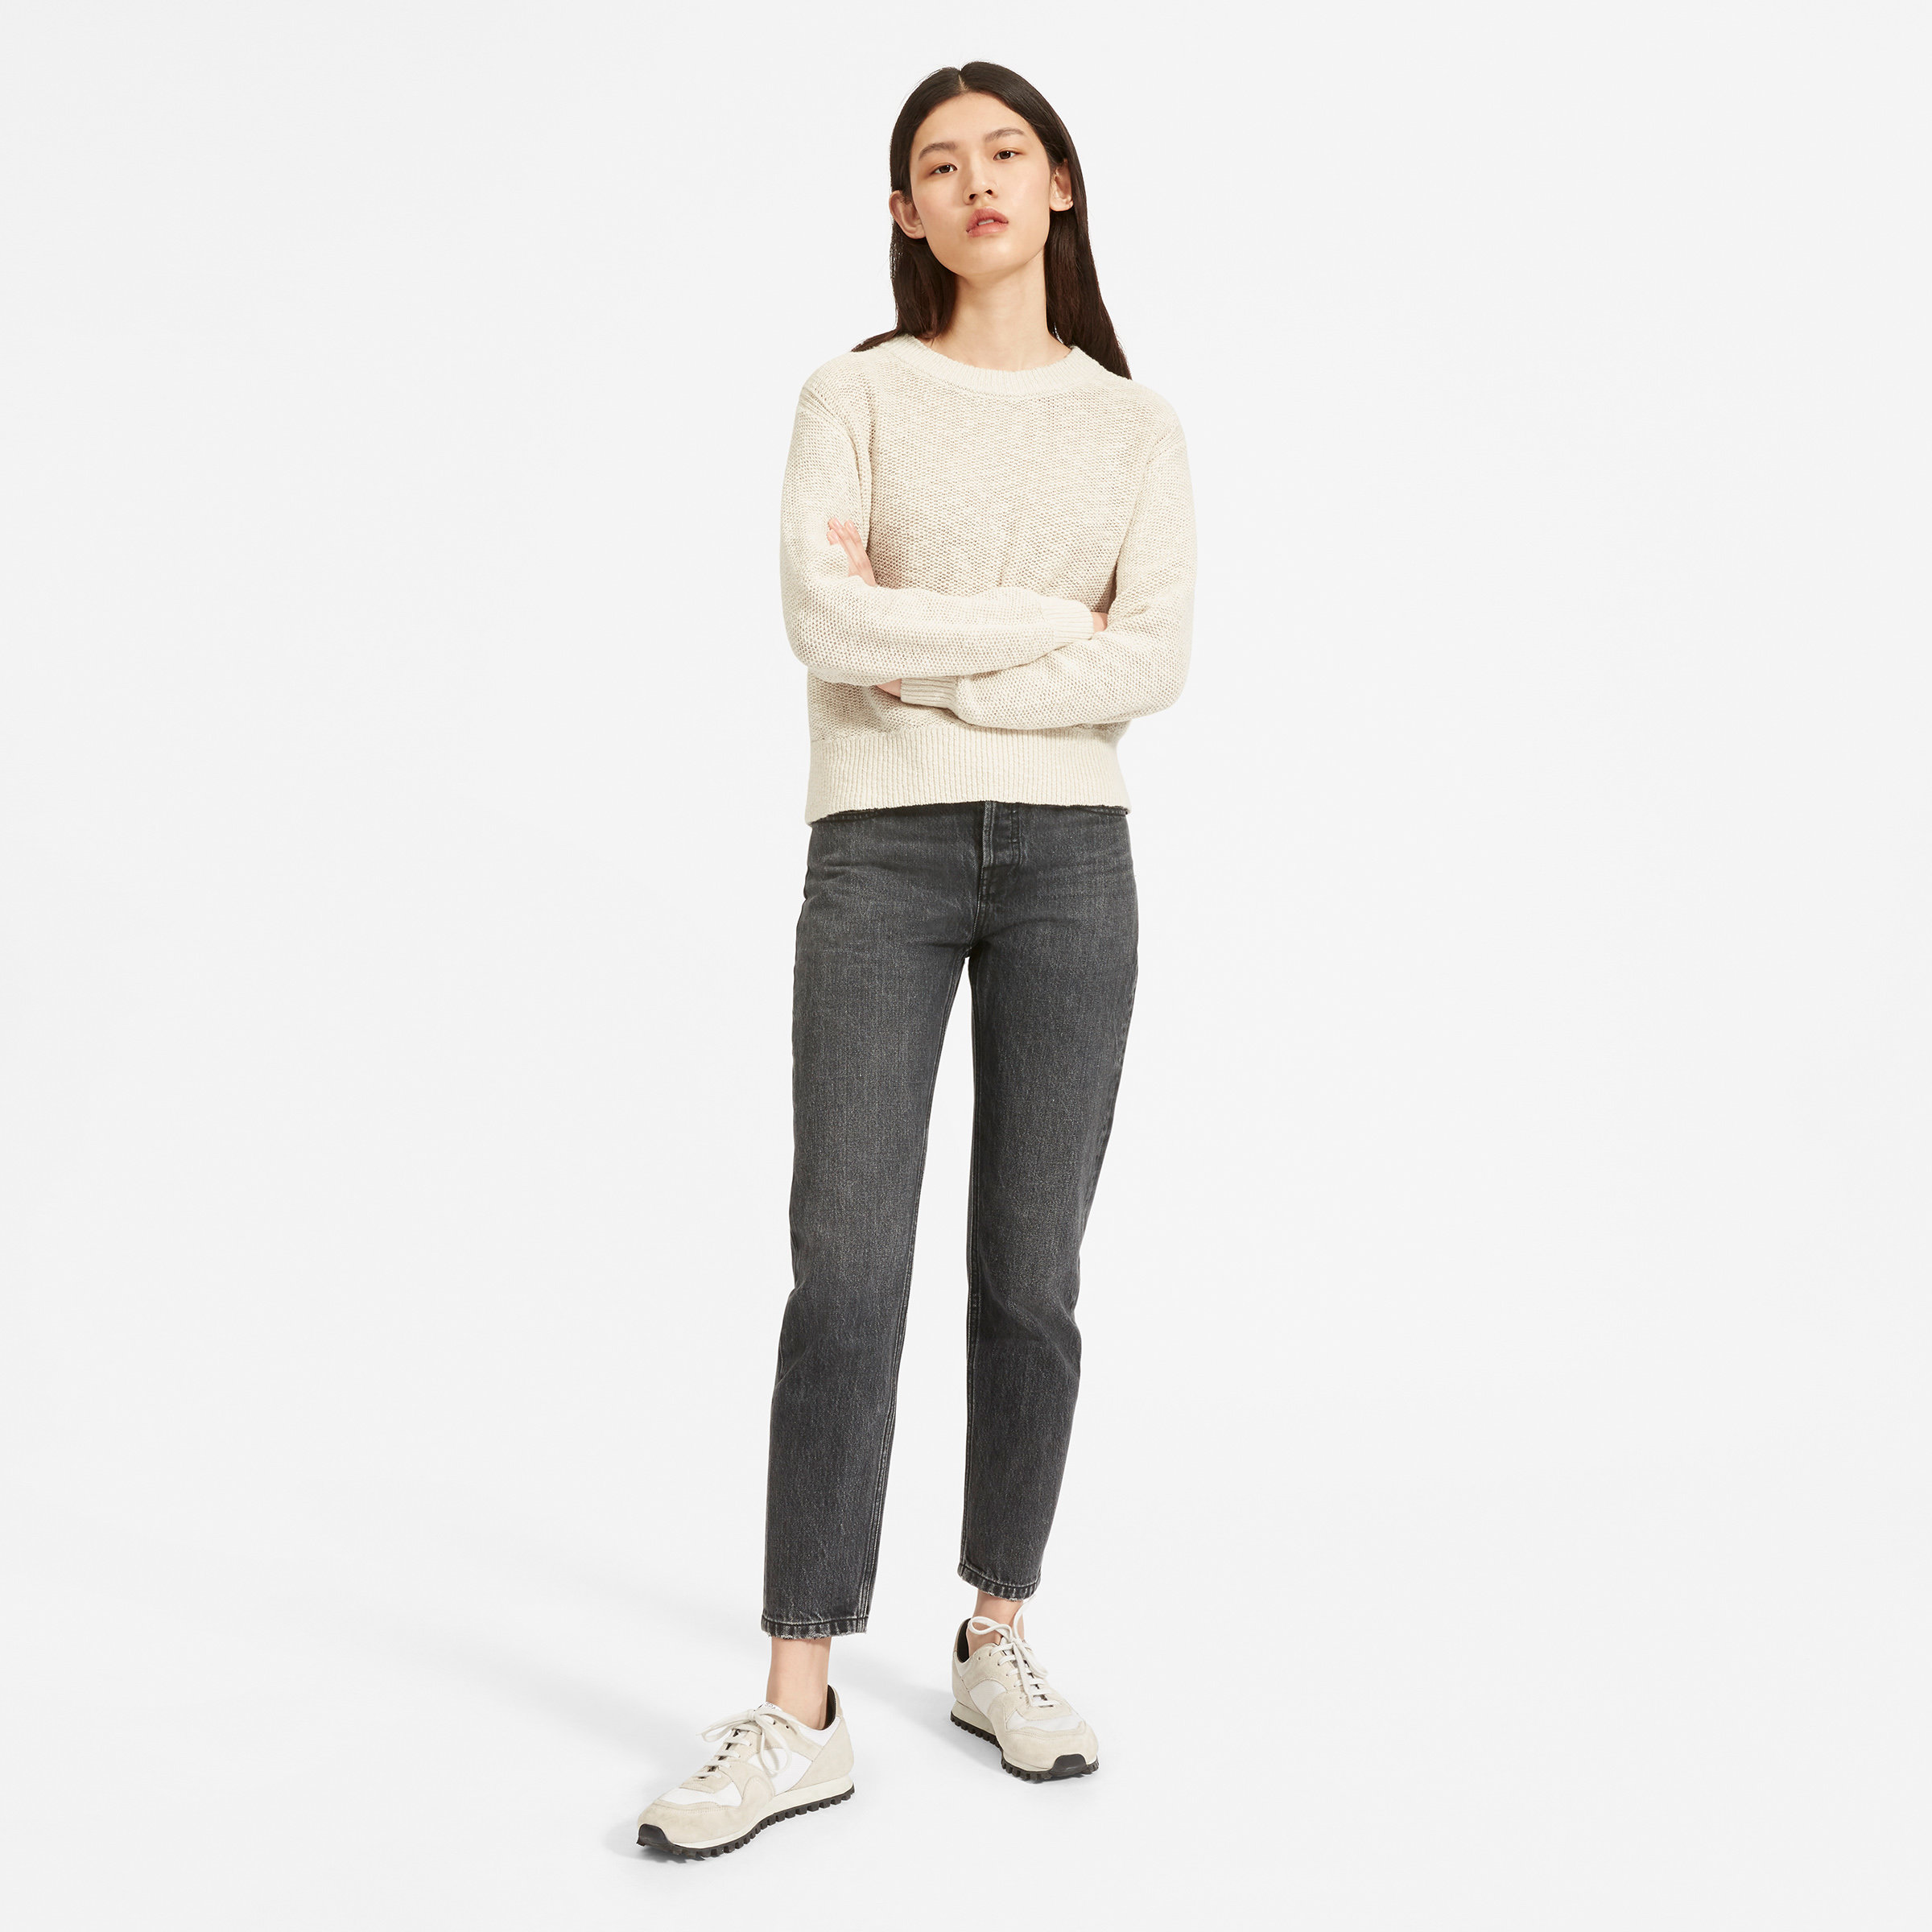 Beige Oversized Trui.Women S Sweaters Cashmere Cardigans And Knit Everlane